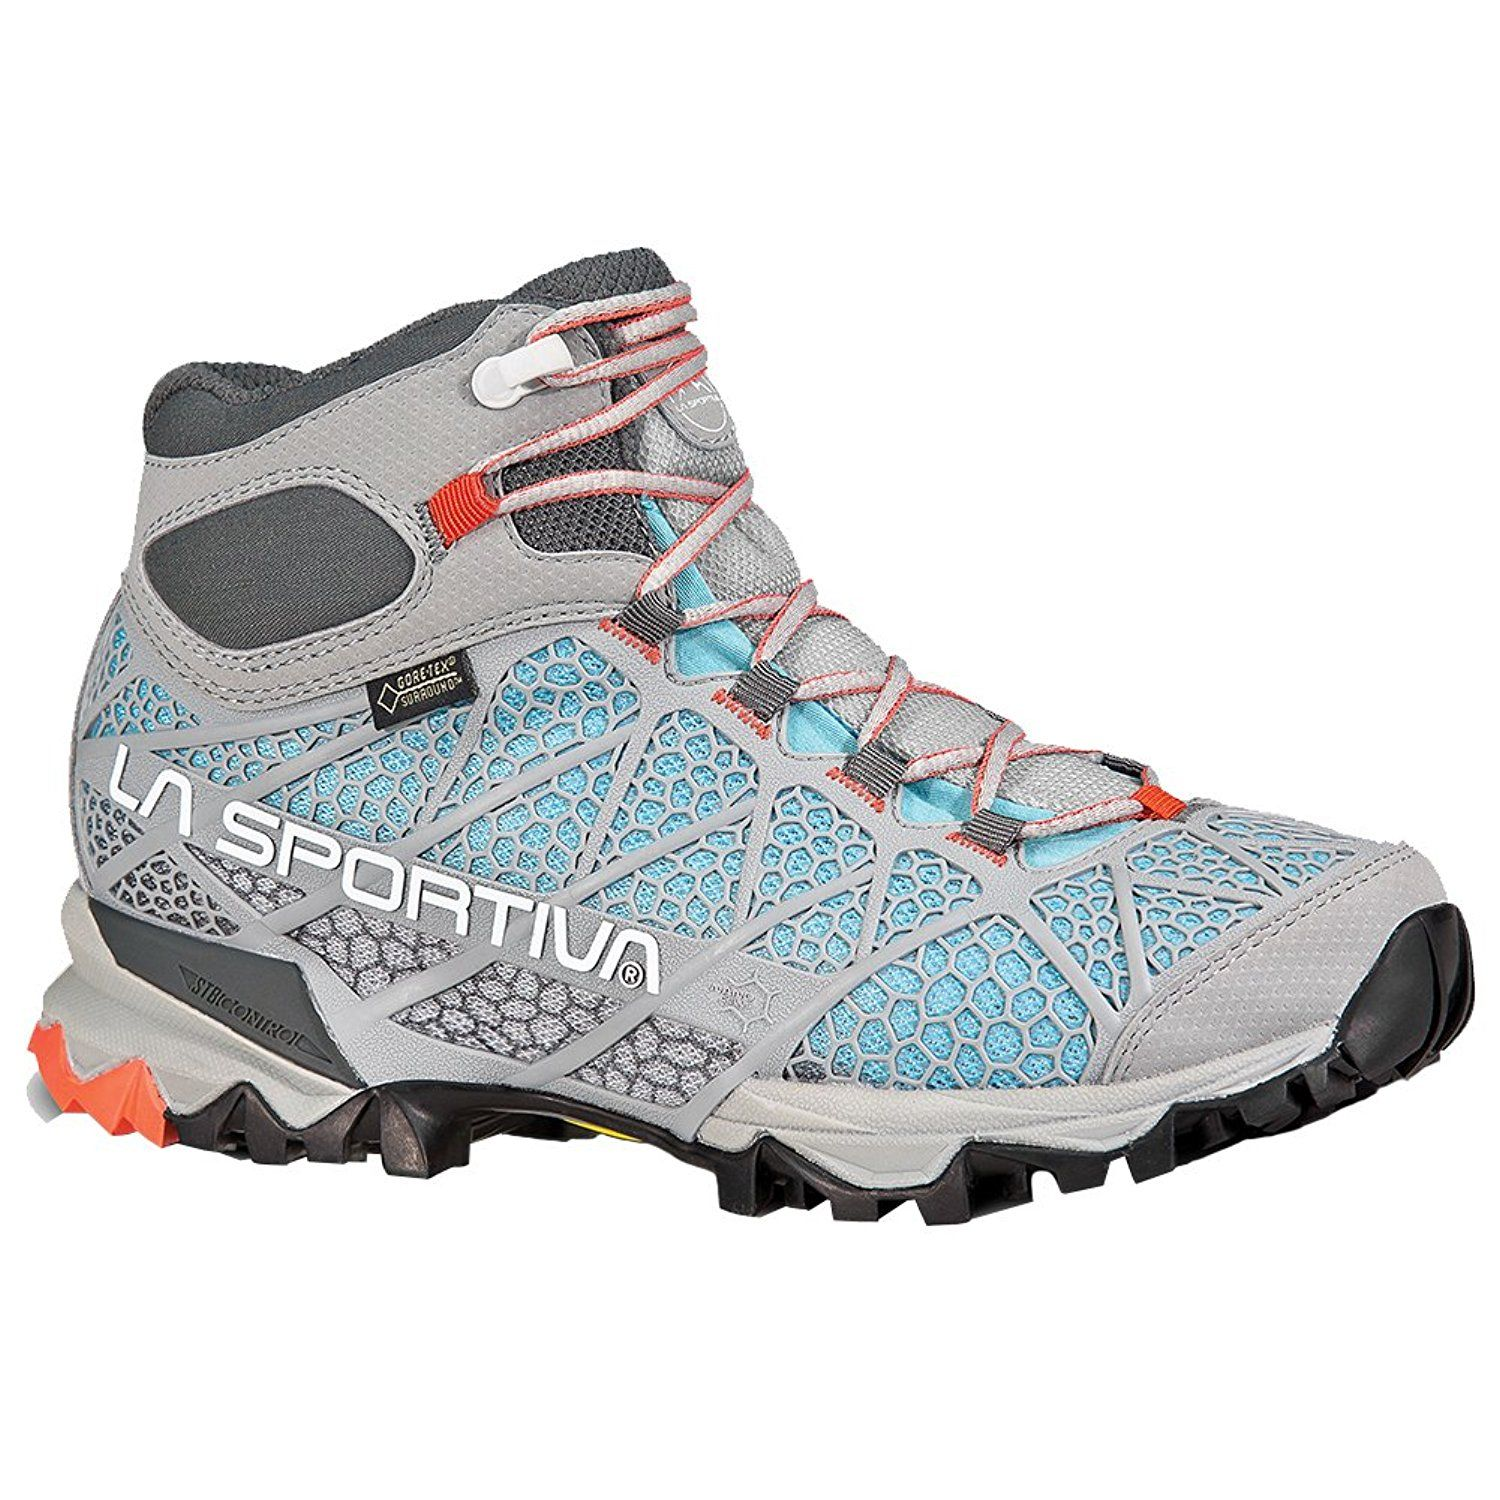 5a07b88ef931d La Sportiva Core High GTX Boot - Women's ** This is an Amazon ...